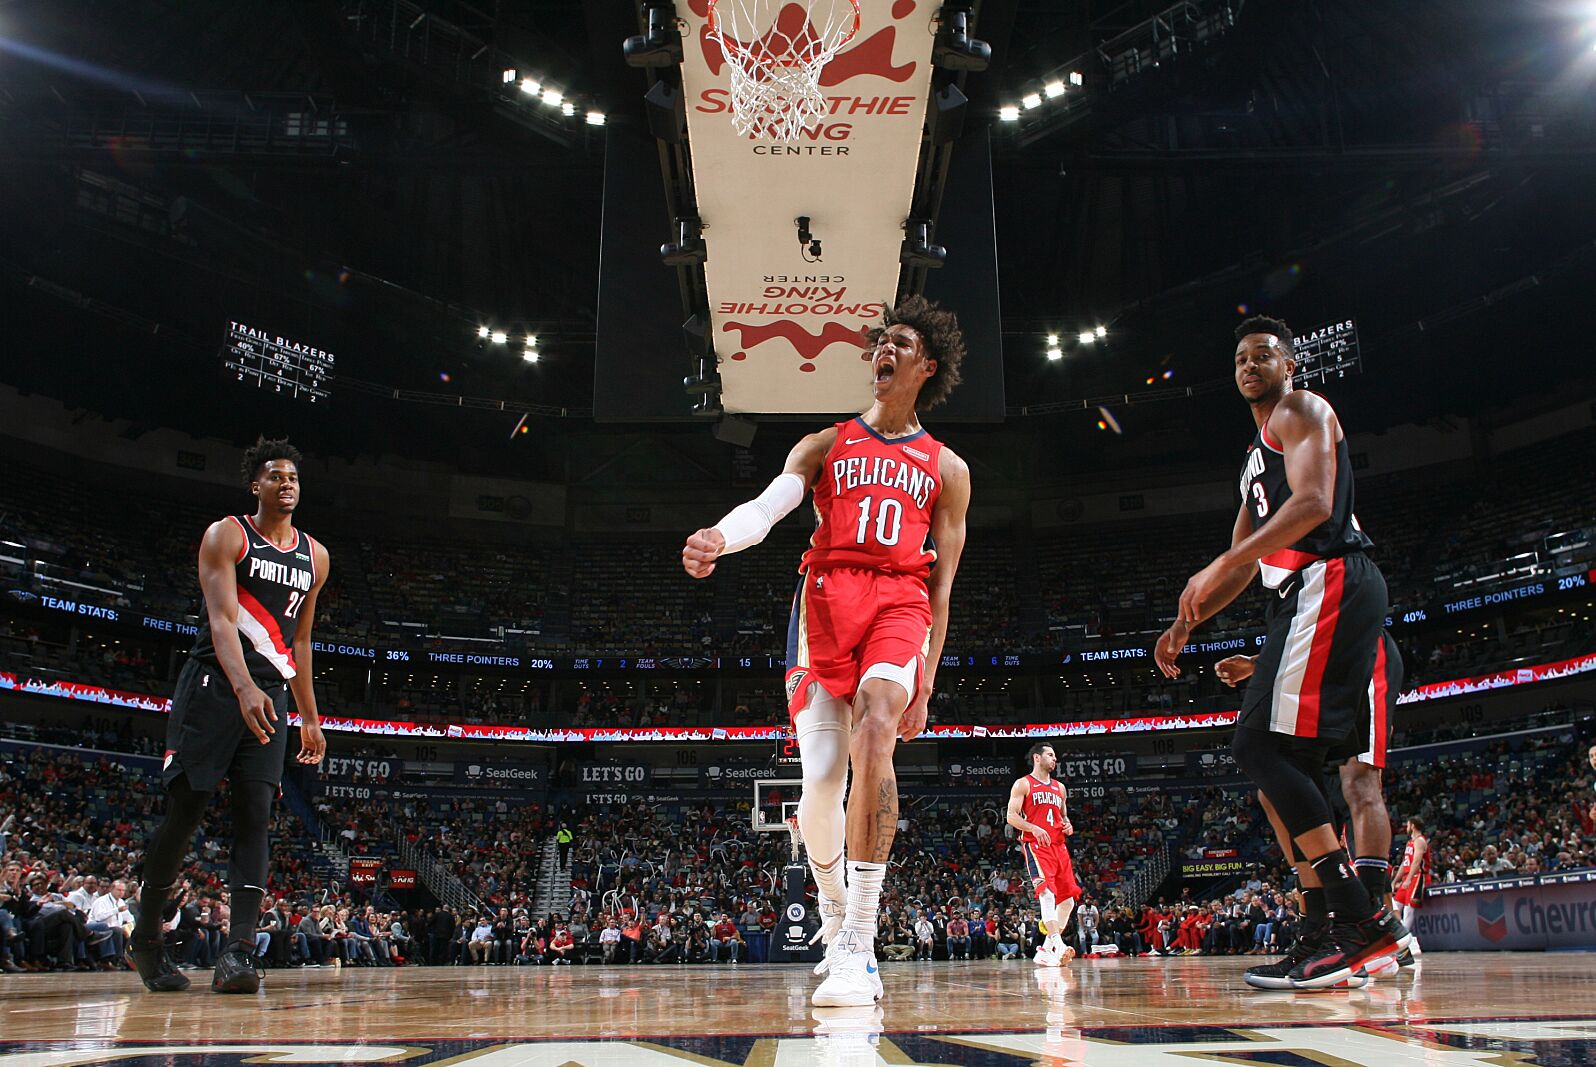 5 takeaways from the Pelicans convincing victory over Portland